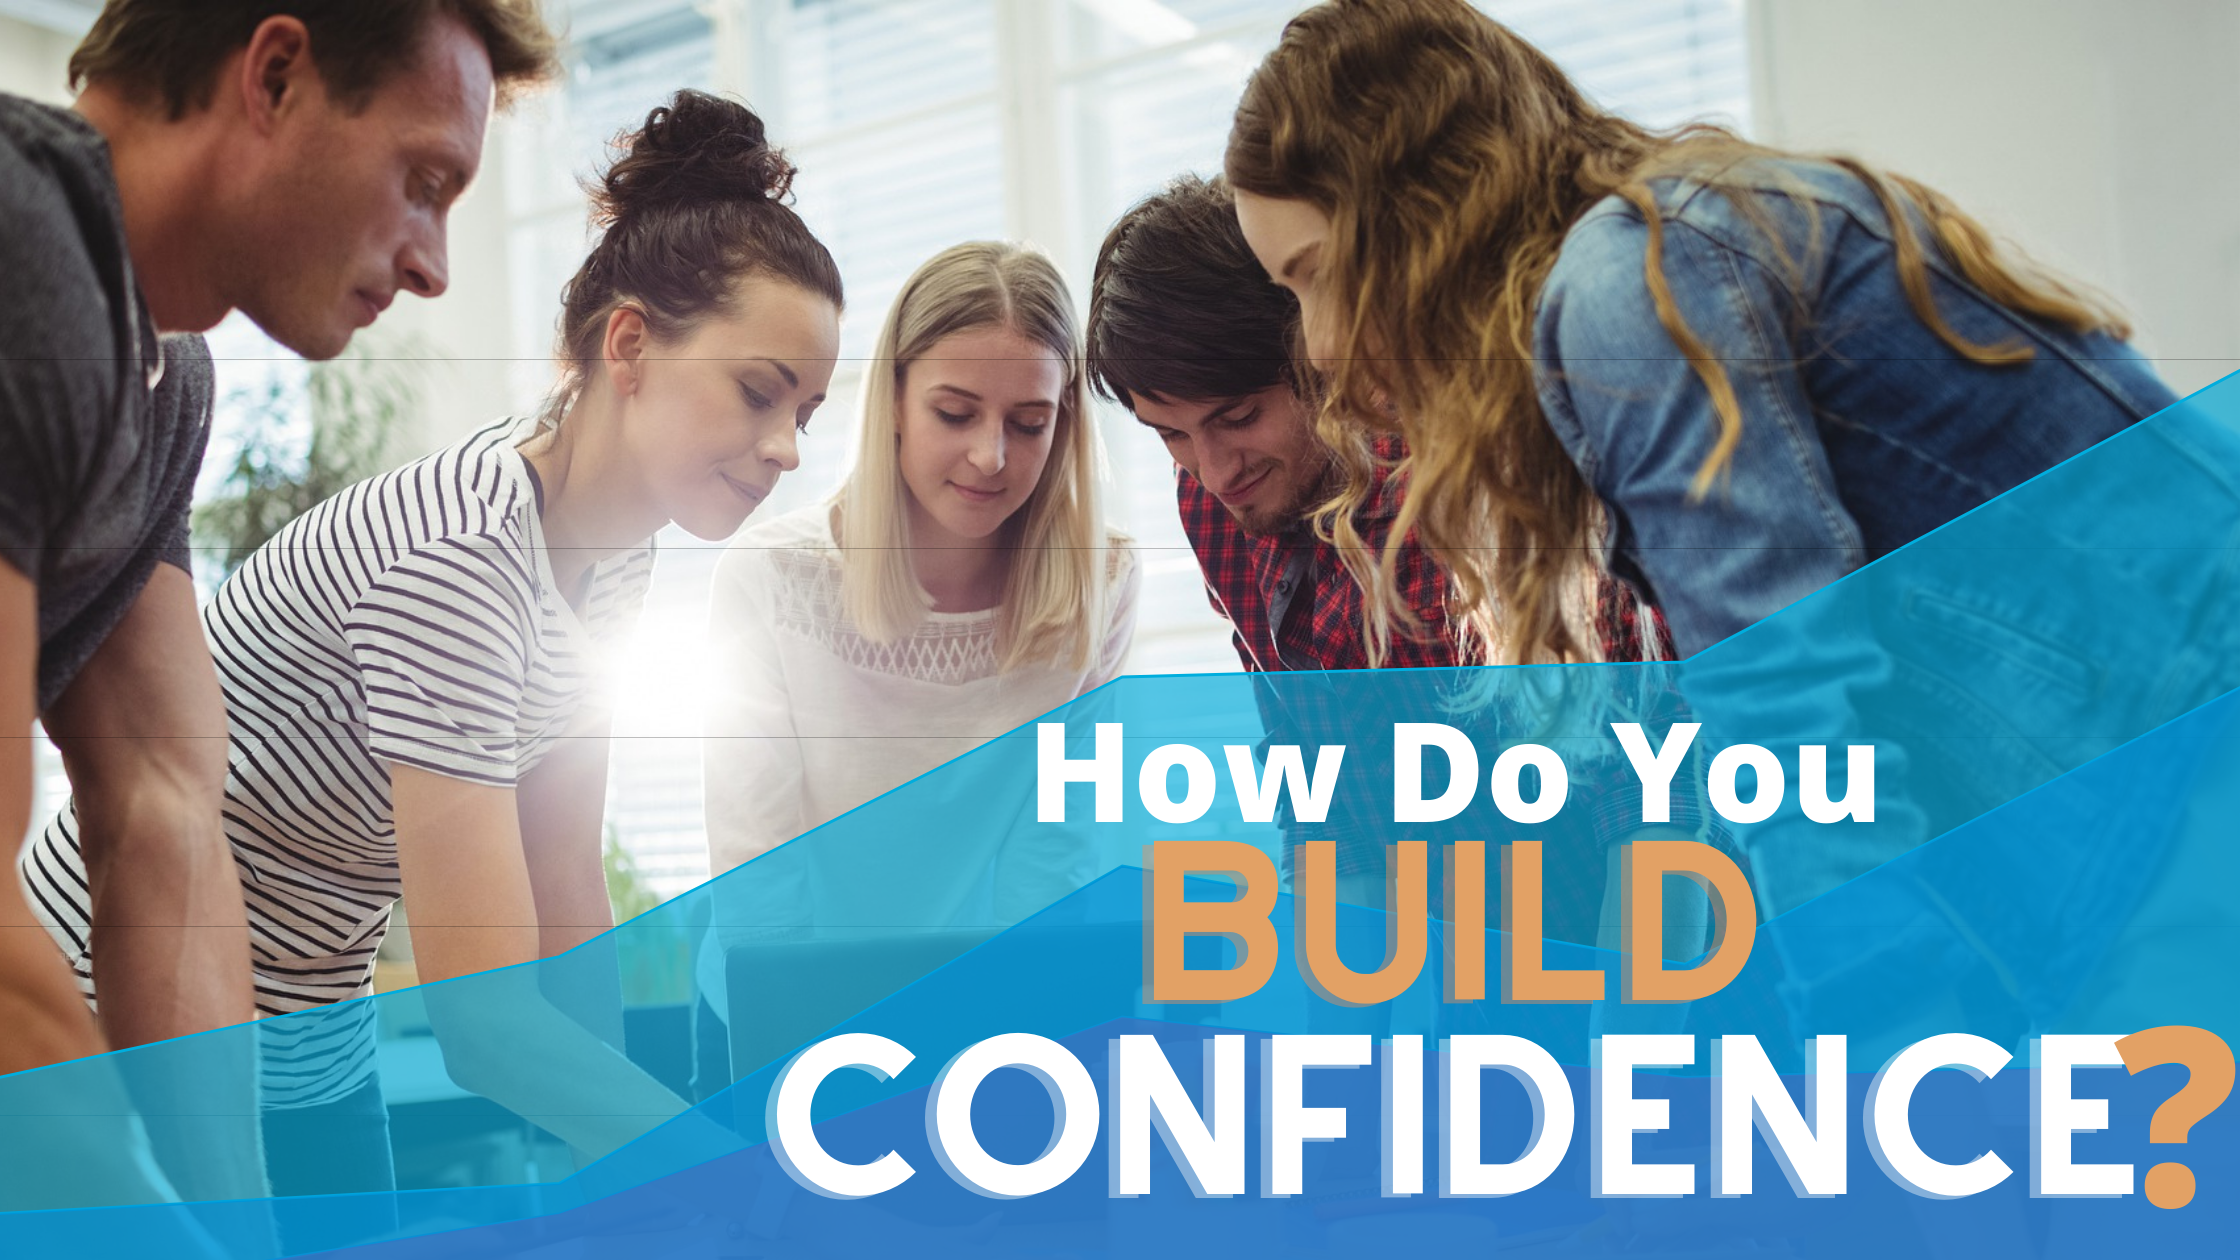 How do you build confidence in the workplace?